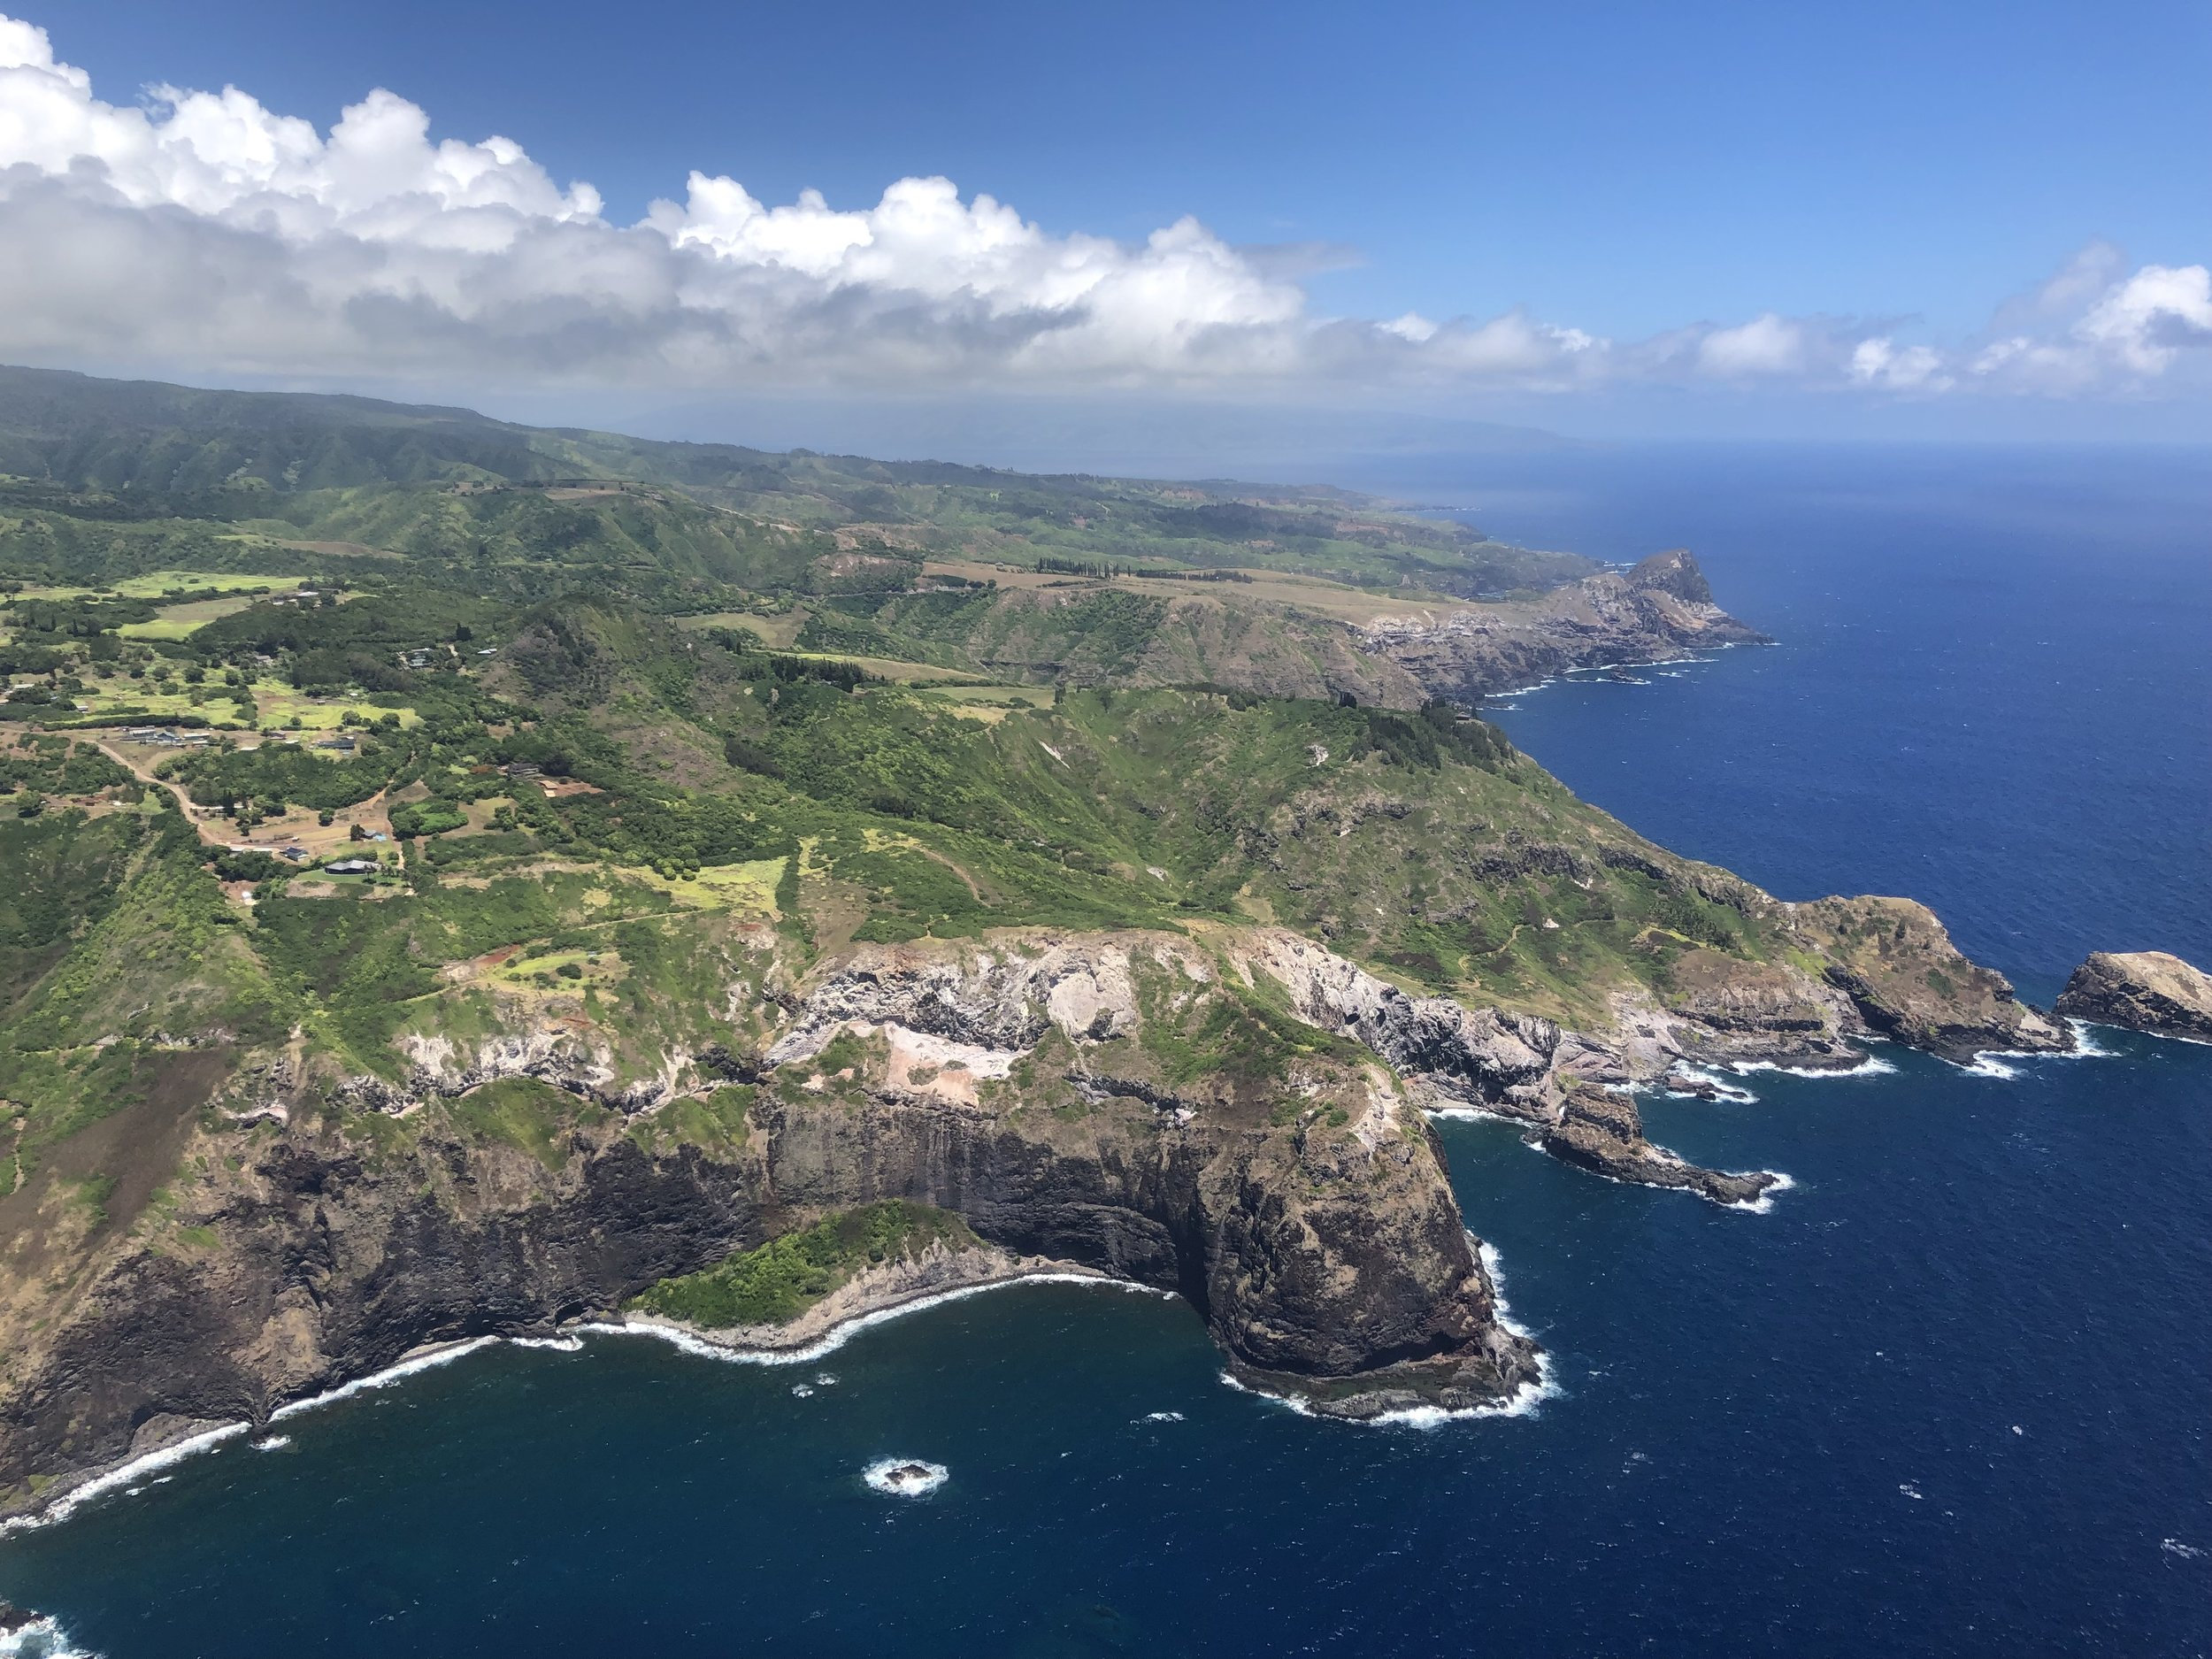 Helicopter views too good not to share…